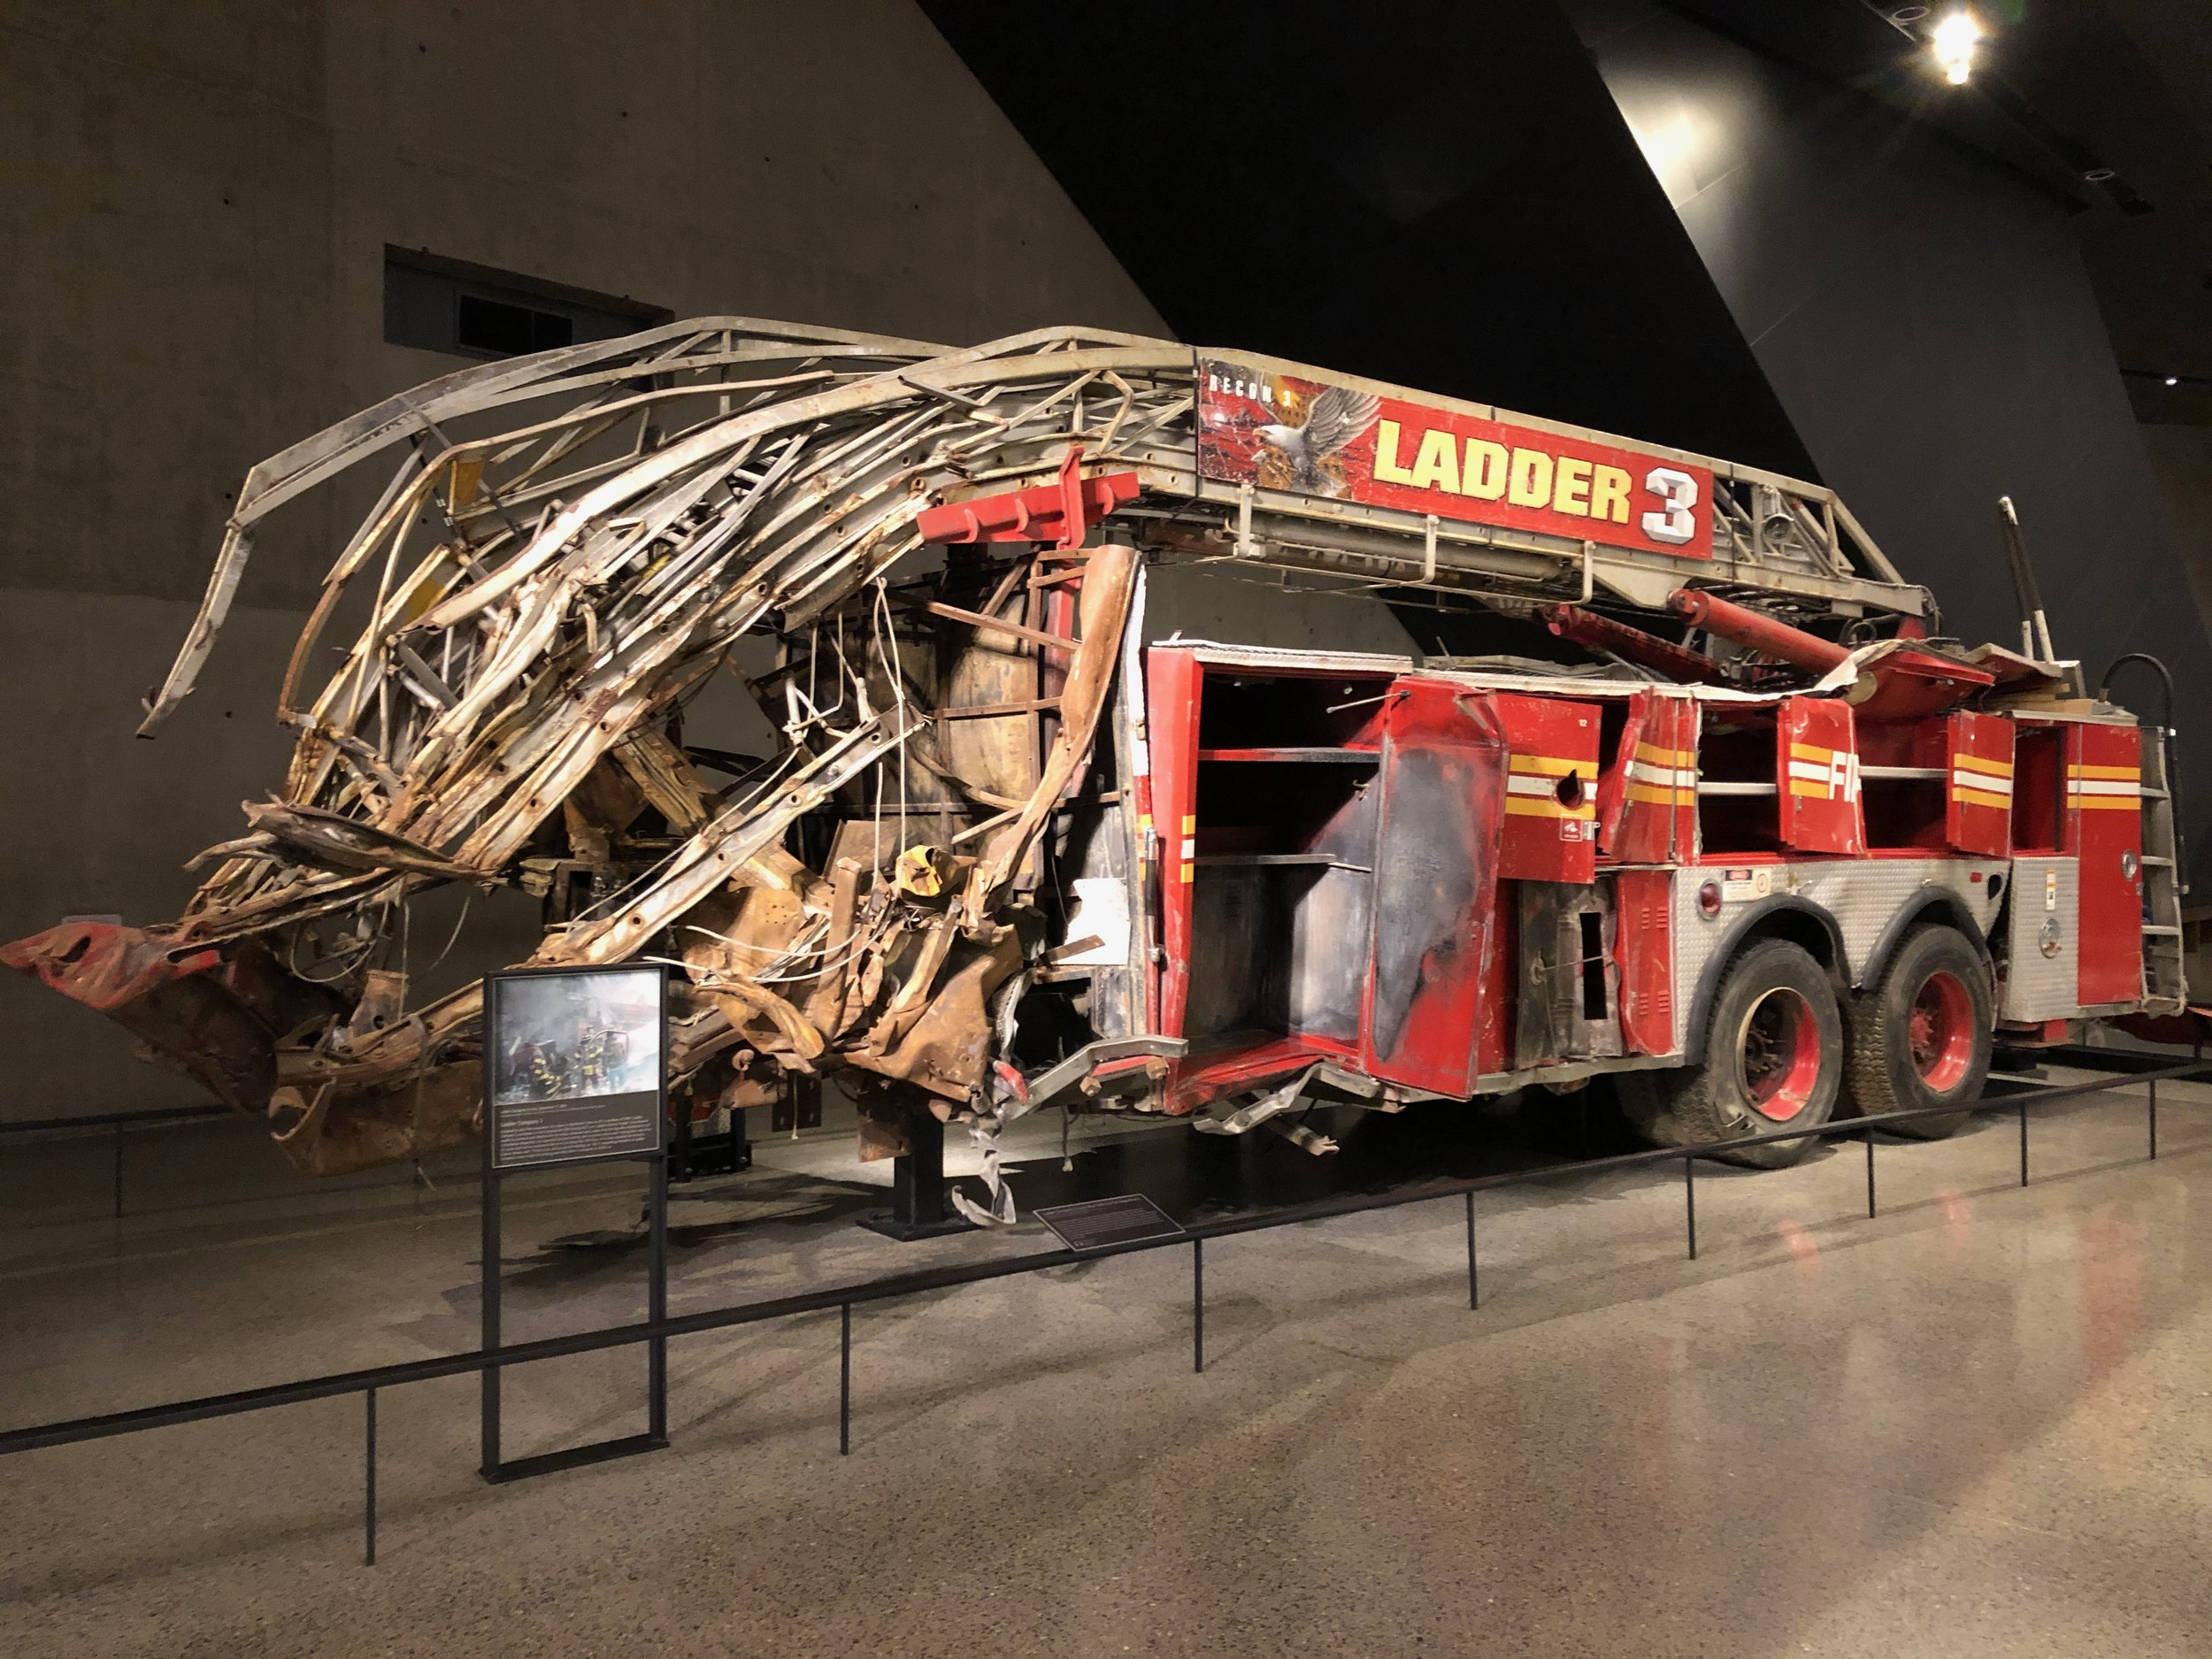 A fire truck at the 911 Memorial